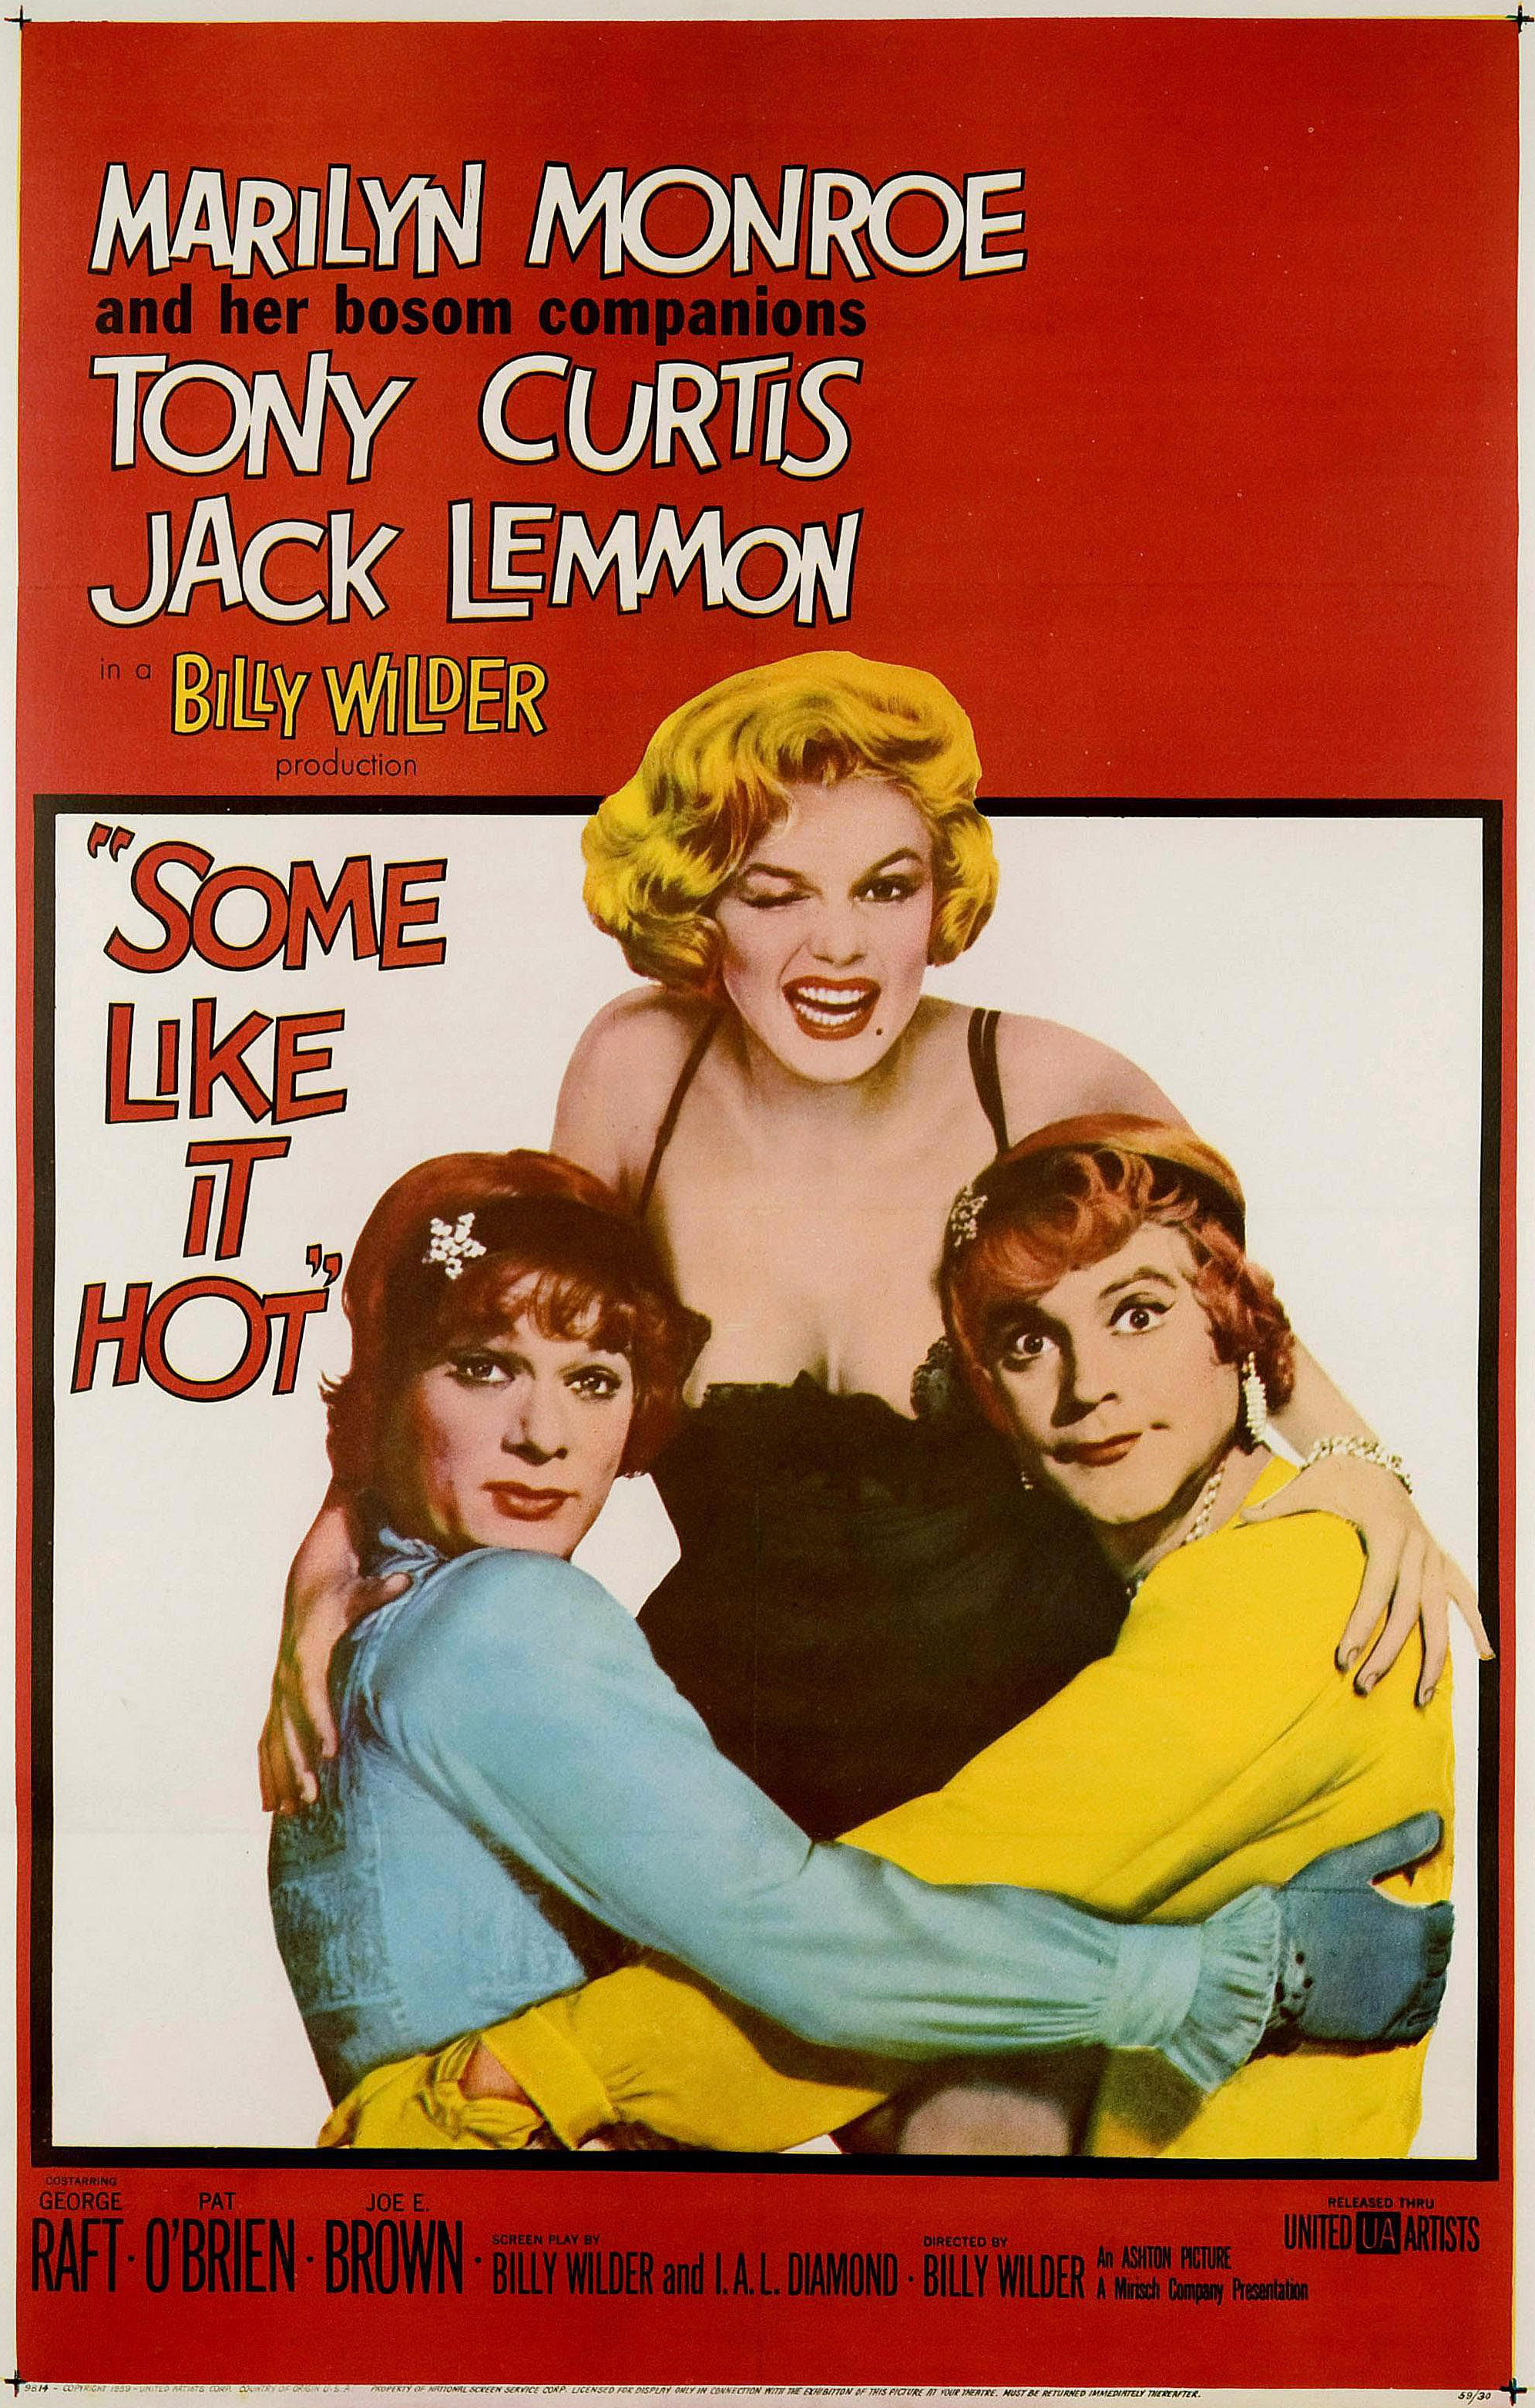 [Image: Some_Like_It_Hot_%281959_poster%29.png]